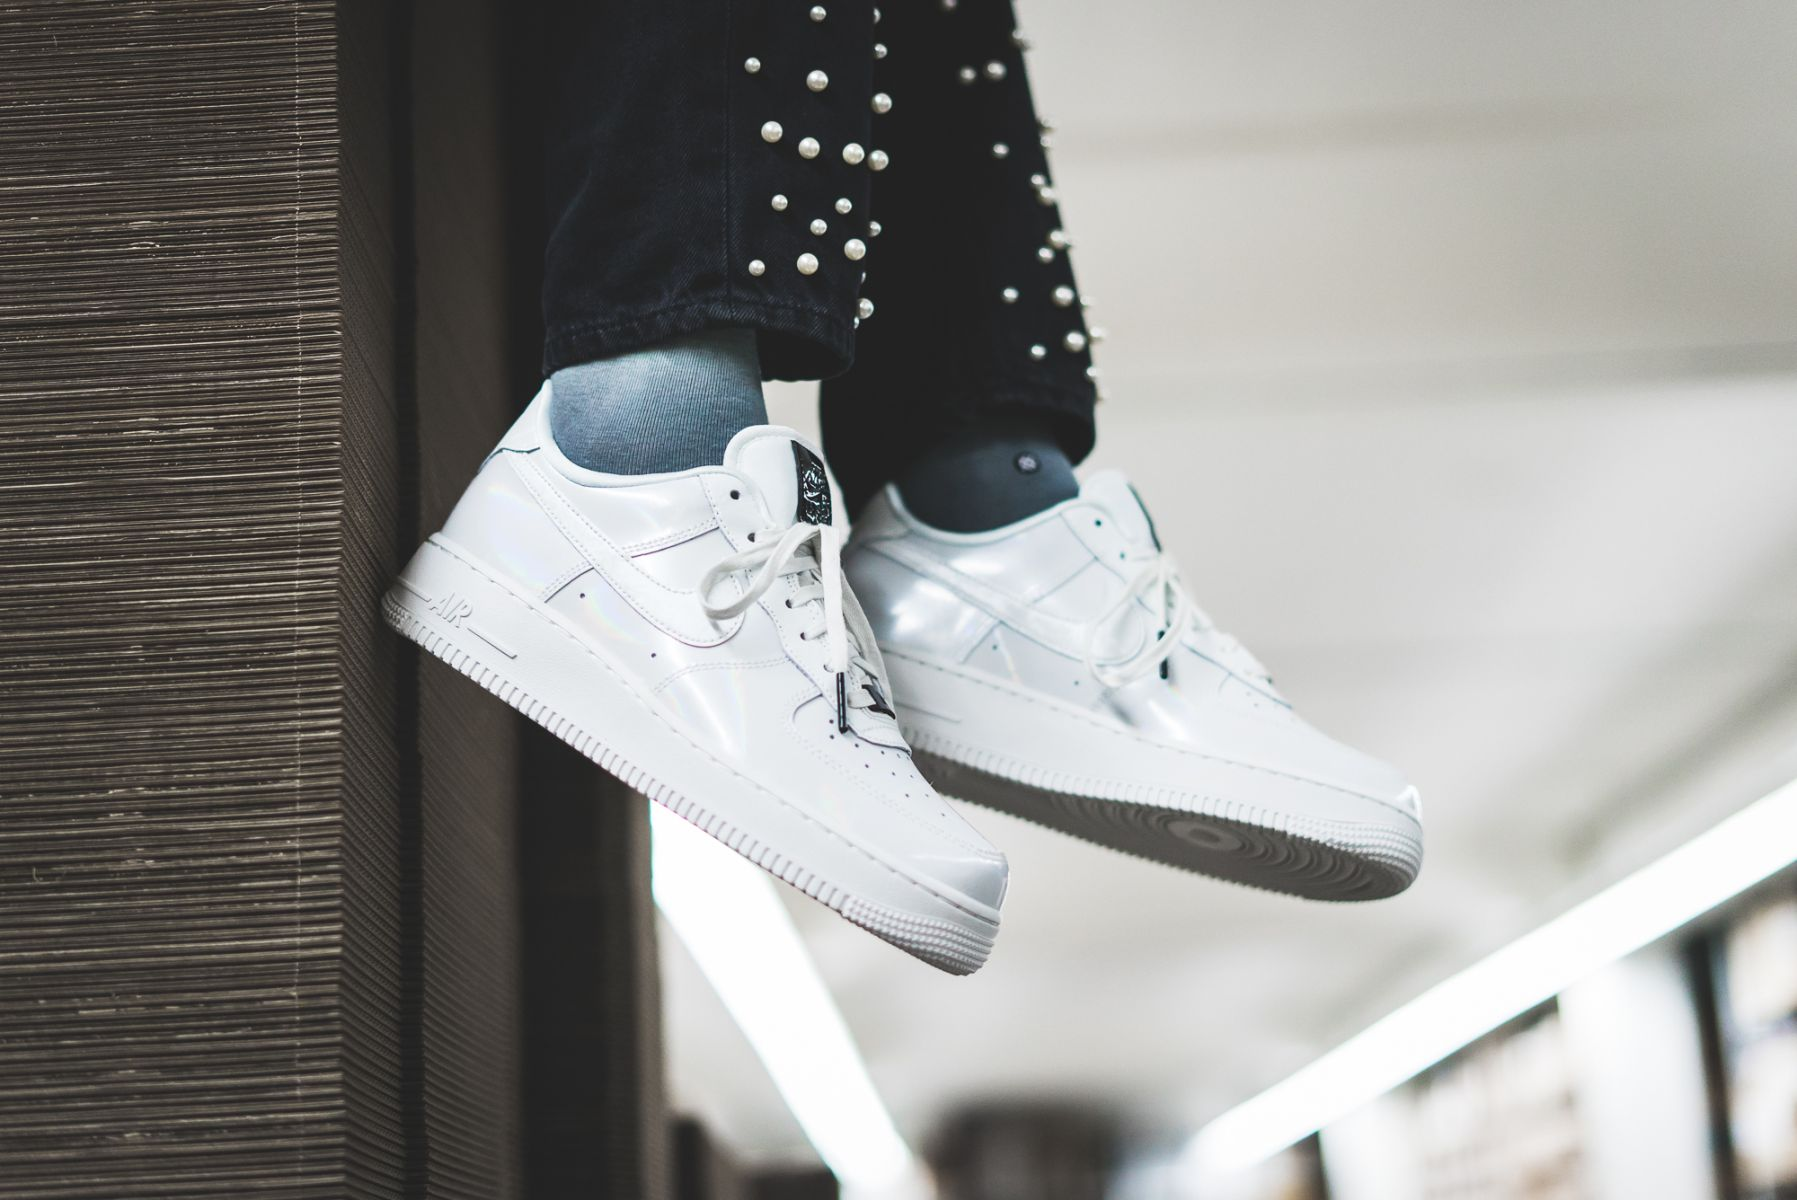 reputable site 3f71d c20d4 Is The Air Force 1 07 LX Nike s Most Glamorous Silhouette Yet ...